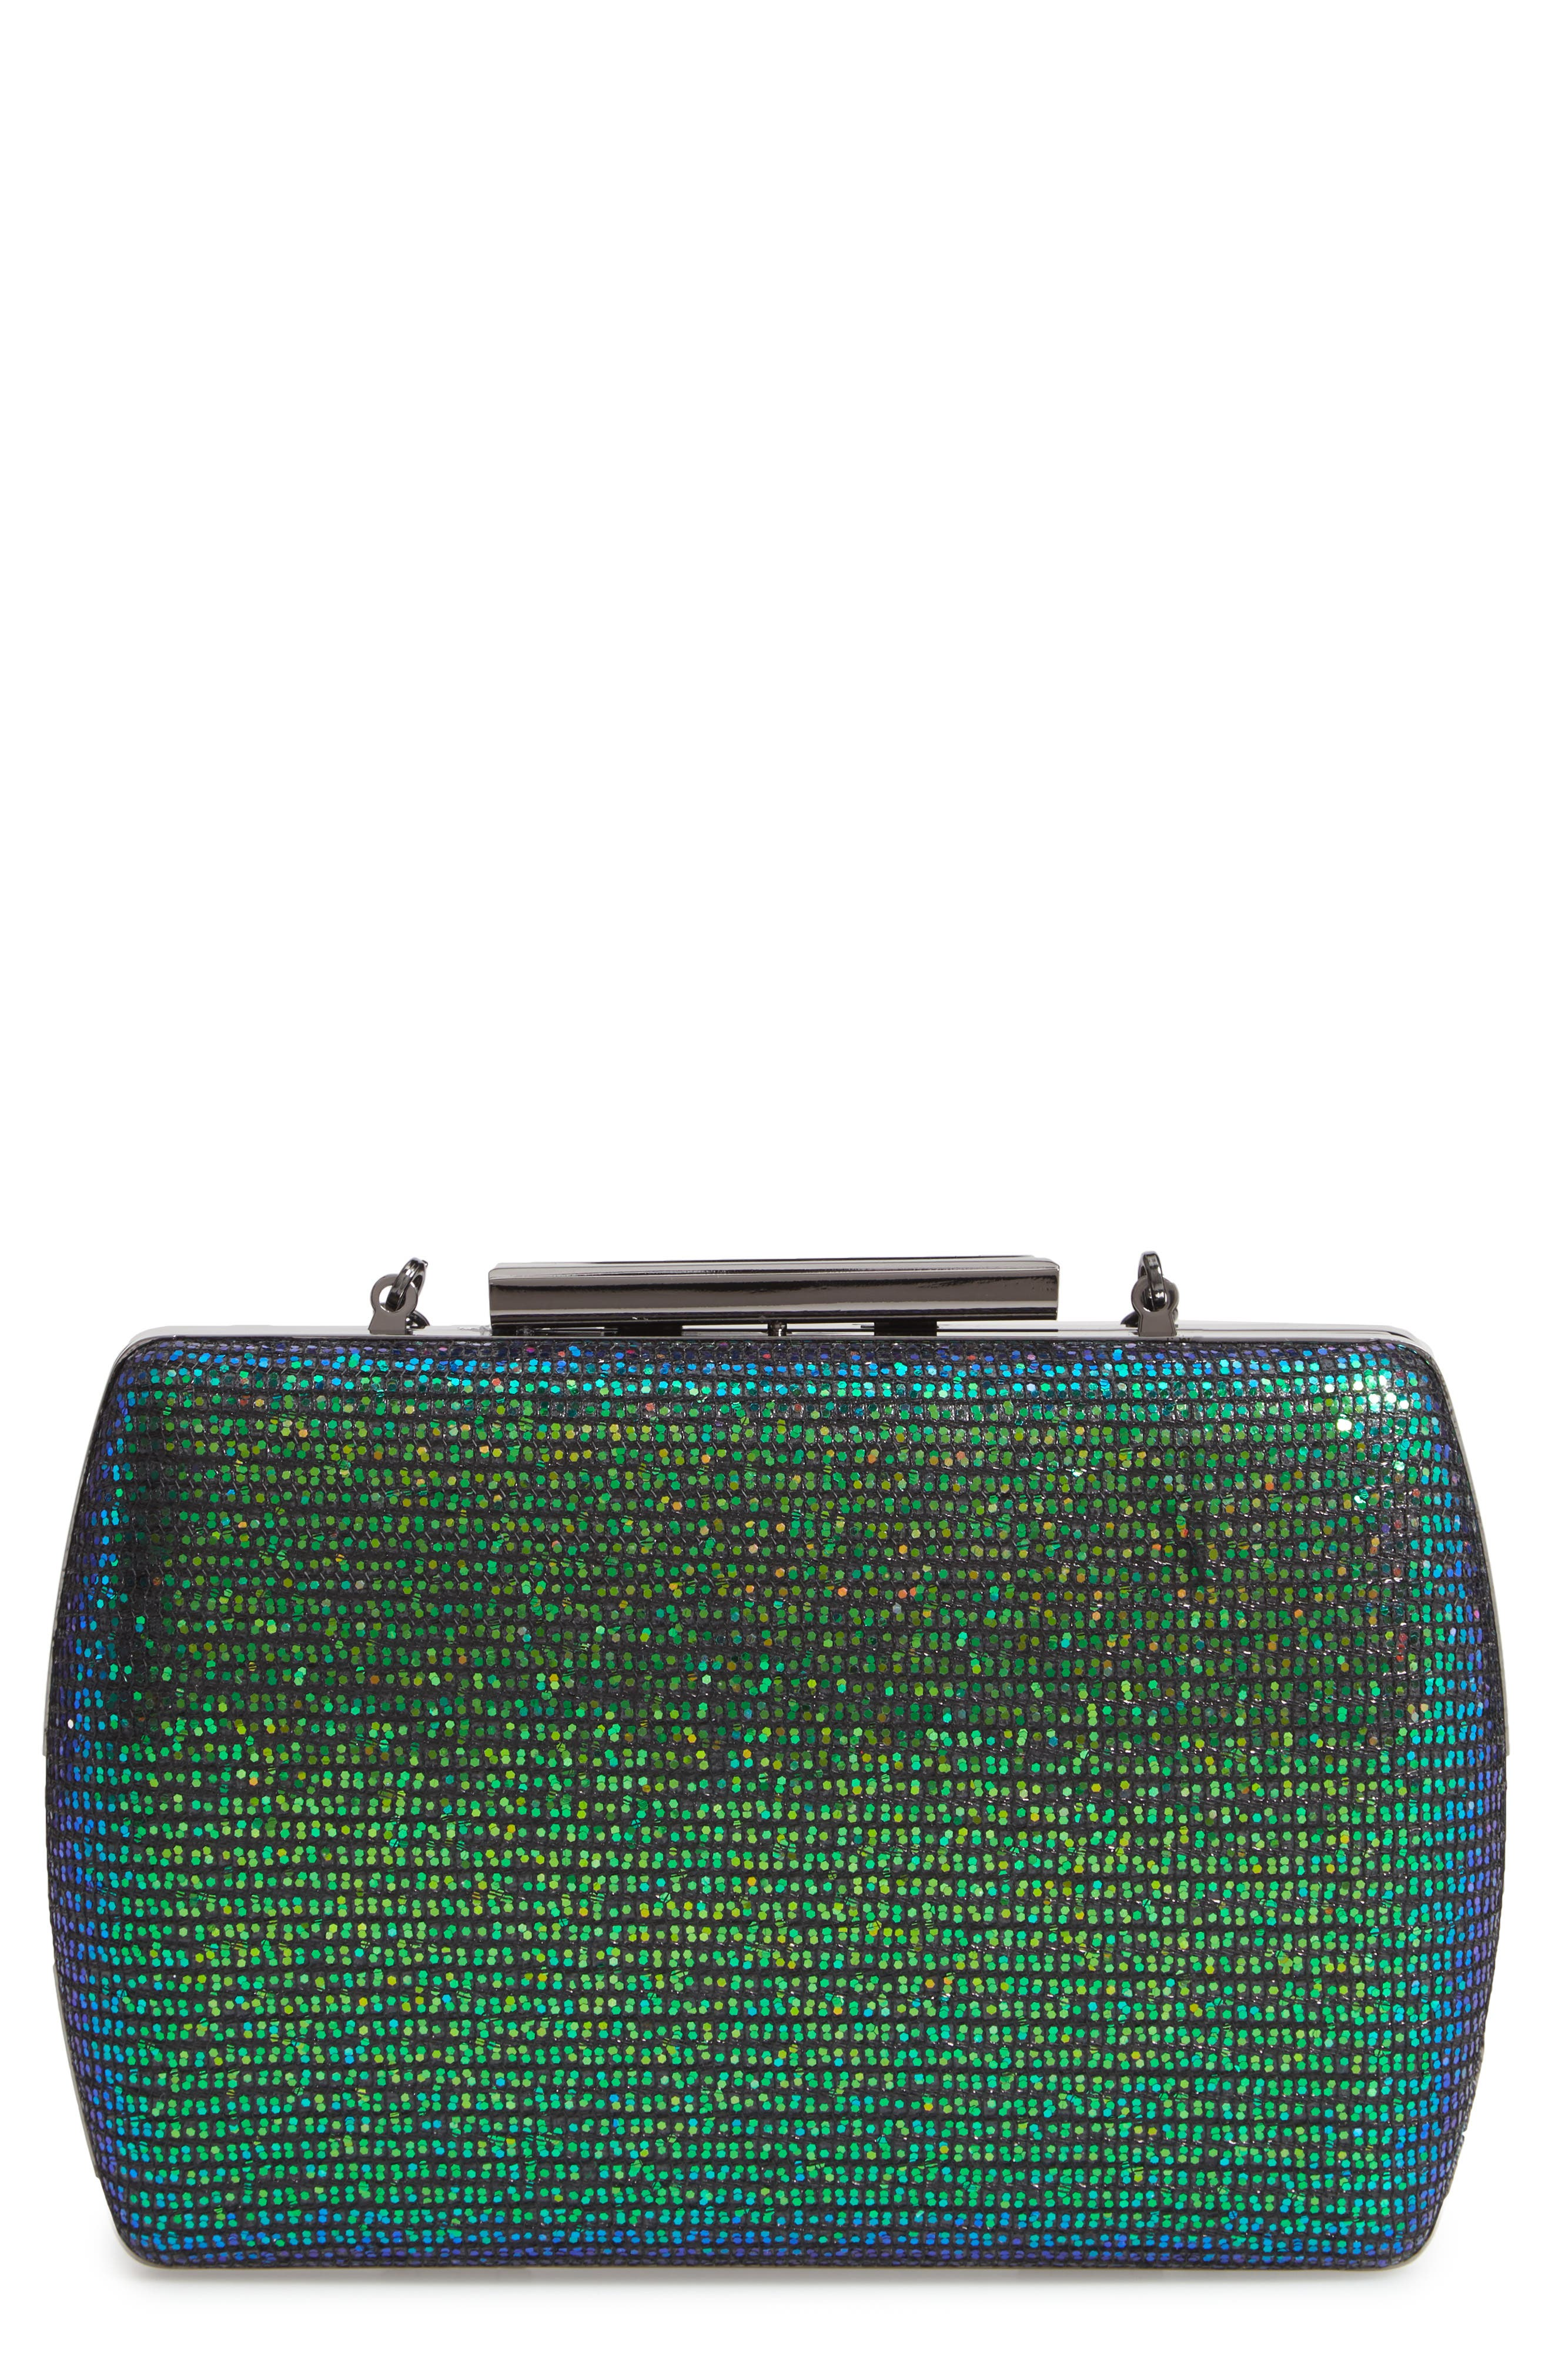 Glitter Minaudière,                             Main thumbnail 1, color,                             BLUE GREEN